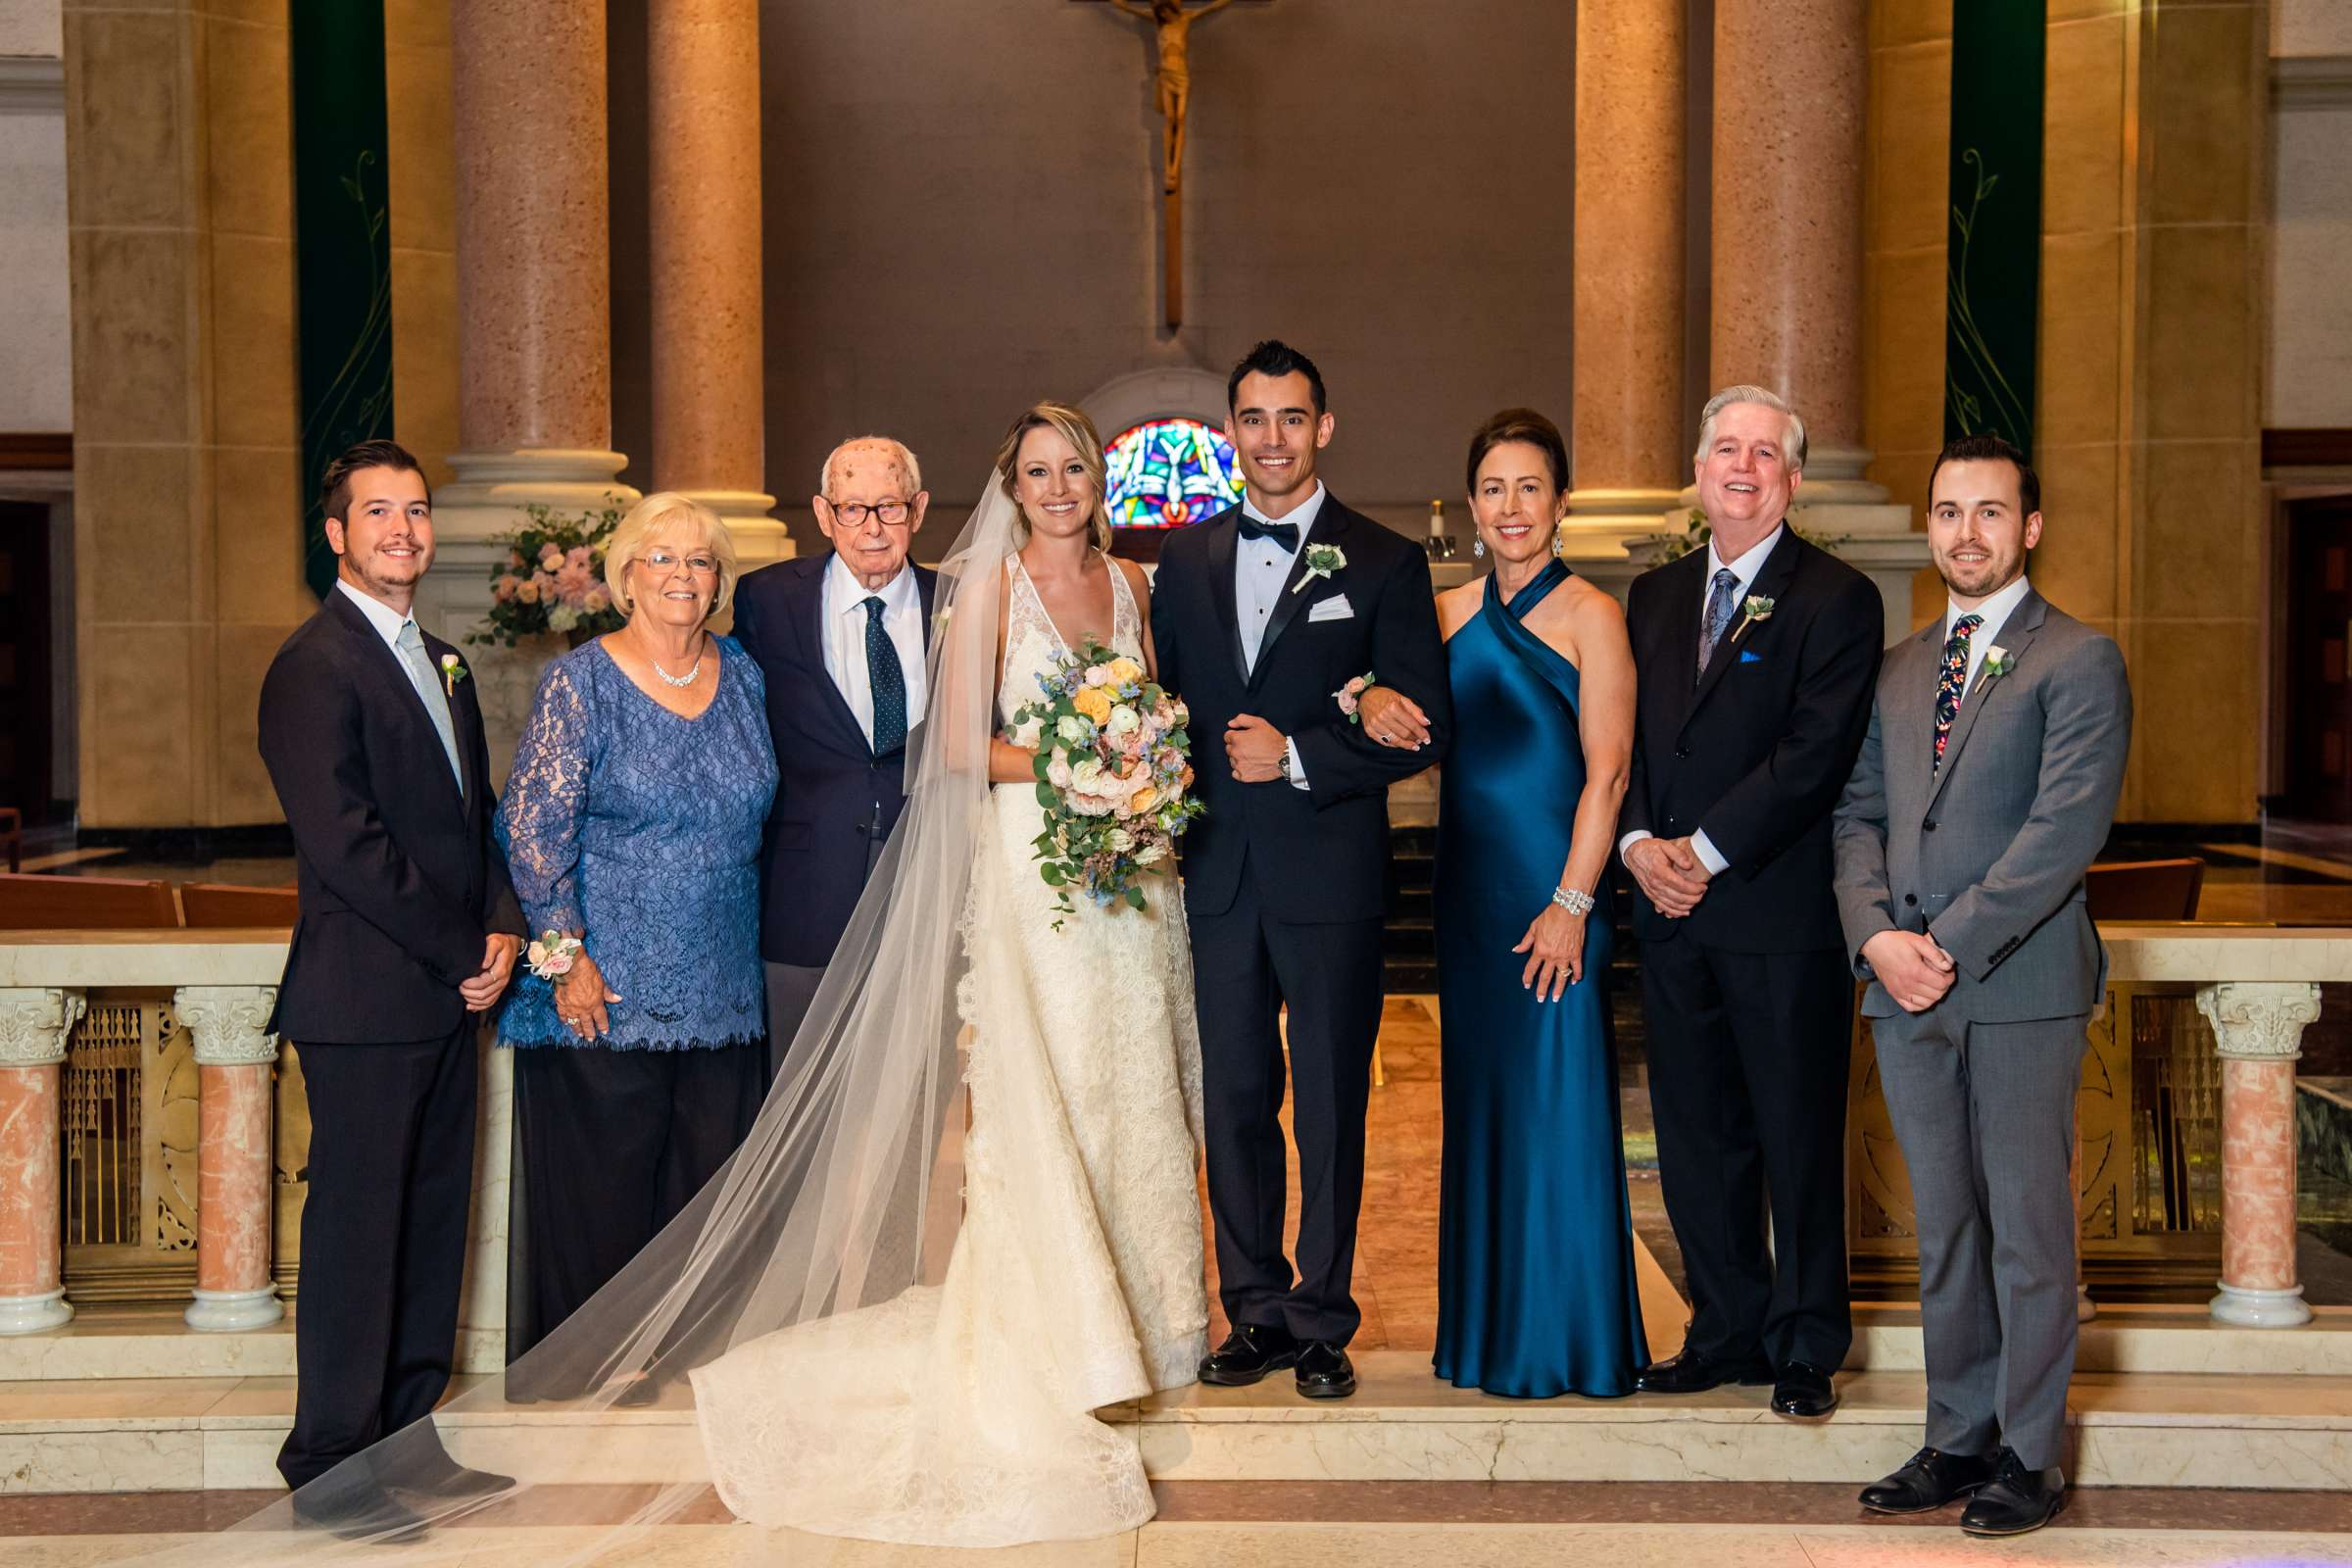 The Prado Wedding coordinated by Bliss Events, Sara and Marvin Wedding Photo #559549 by True Photography